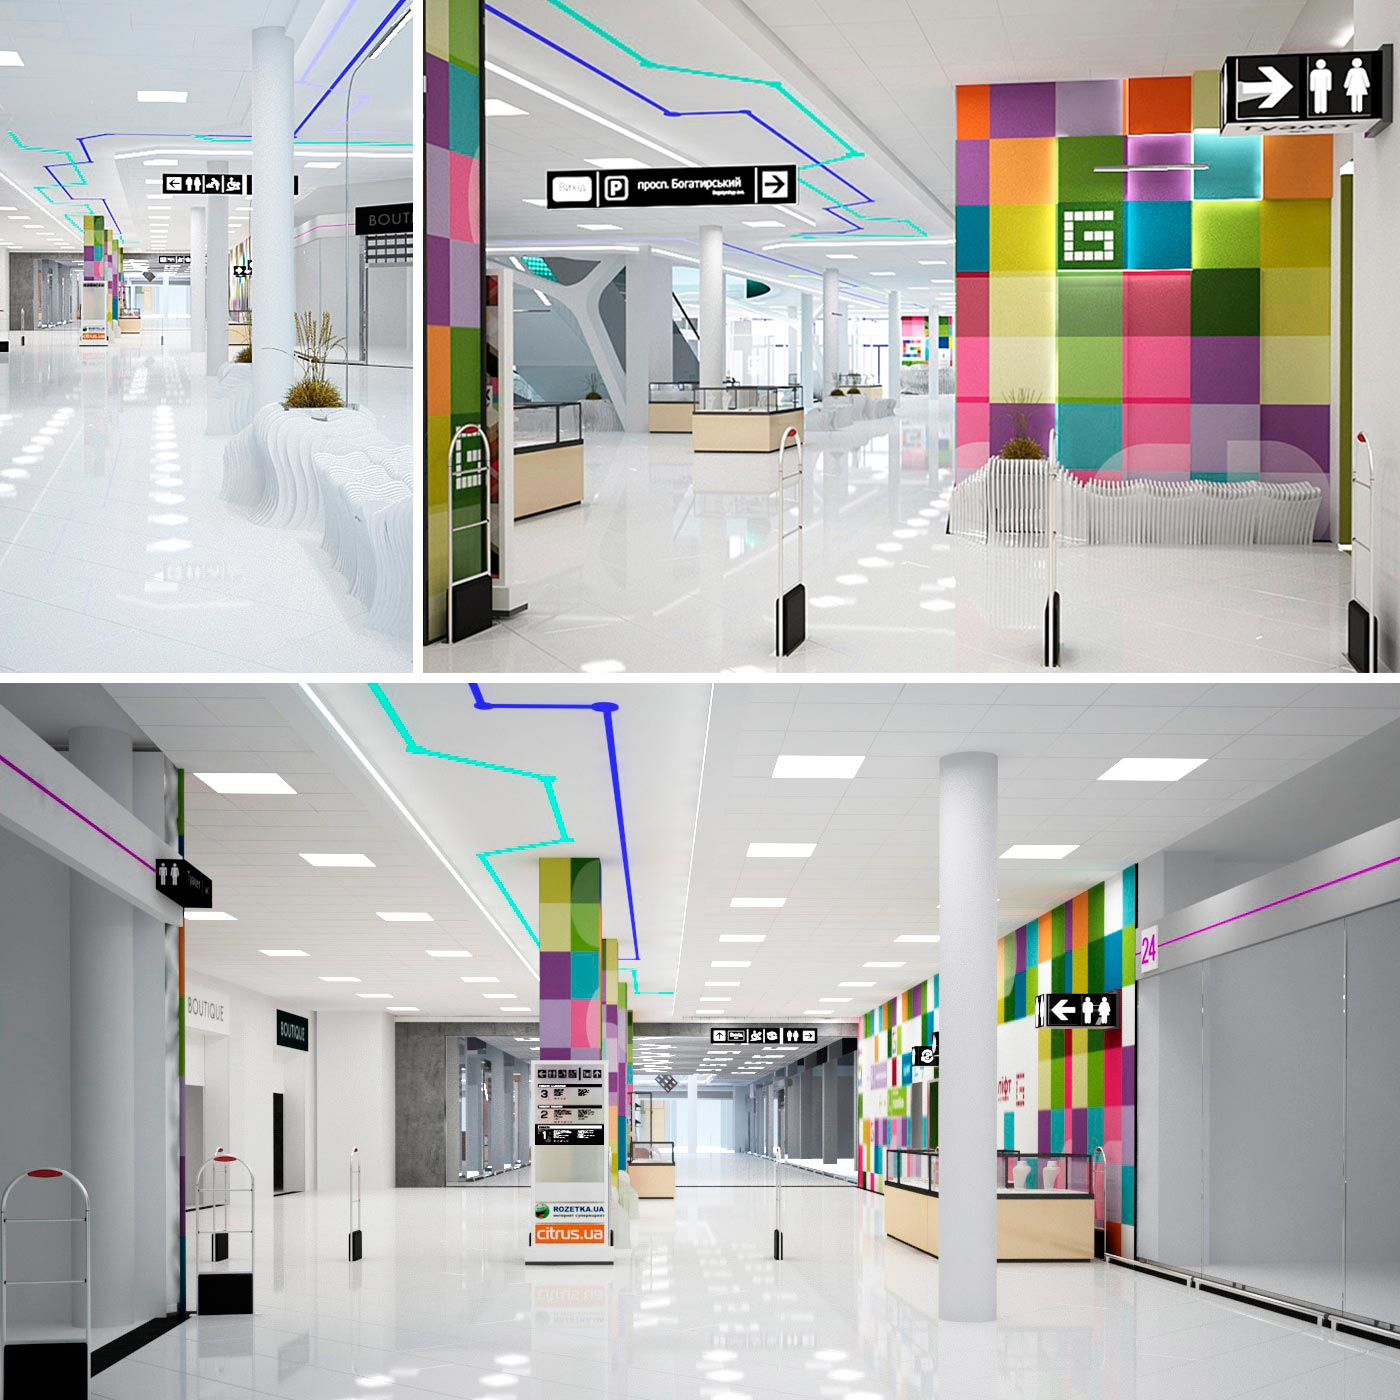 Retail commercial property and branding